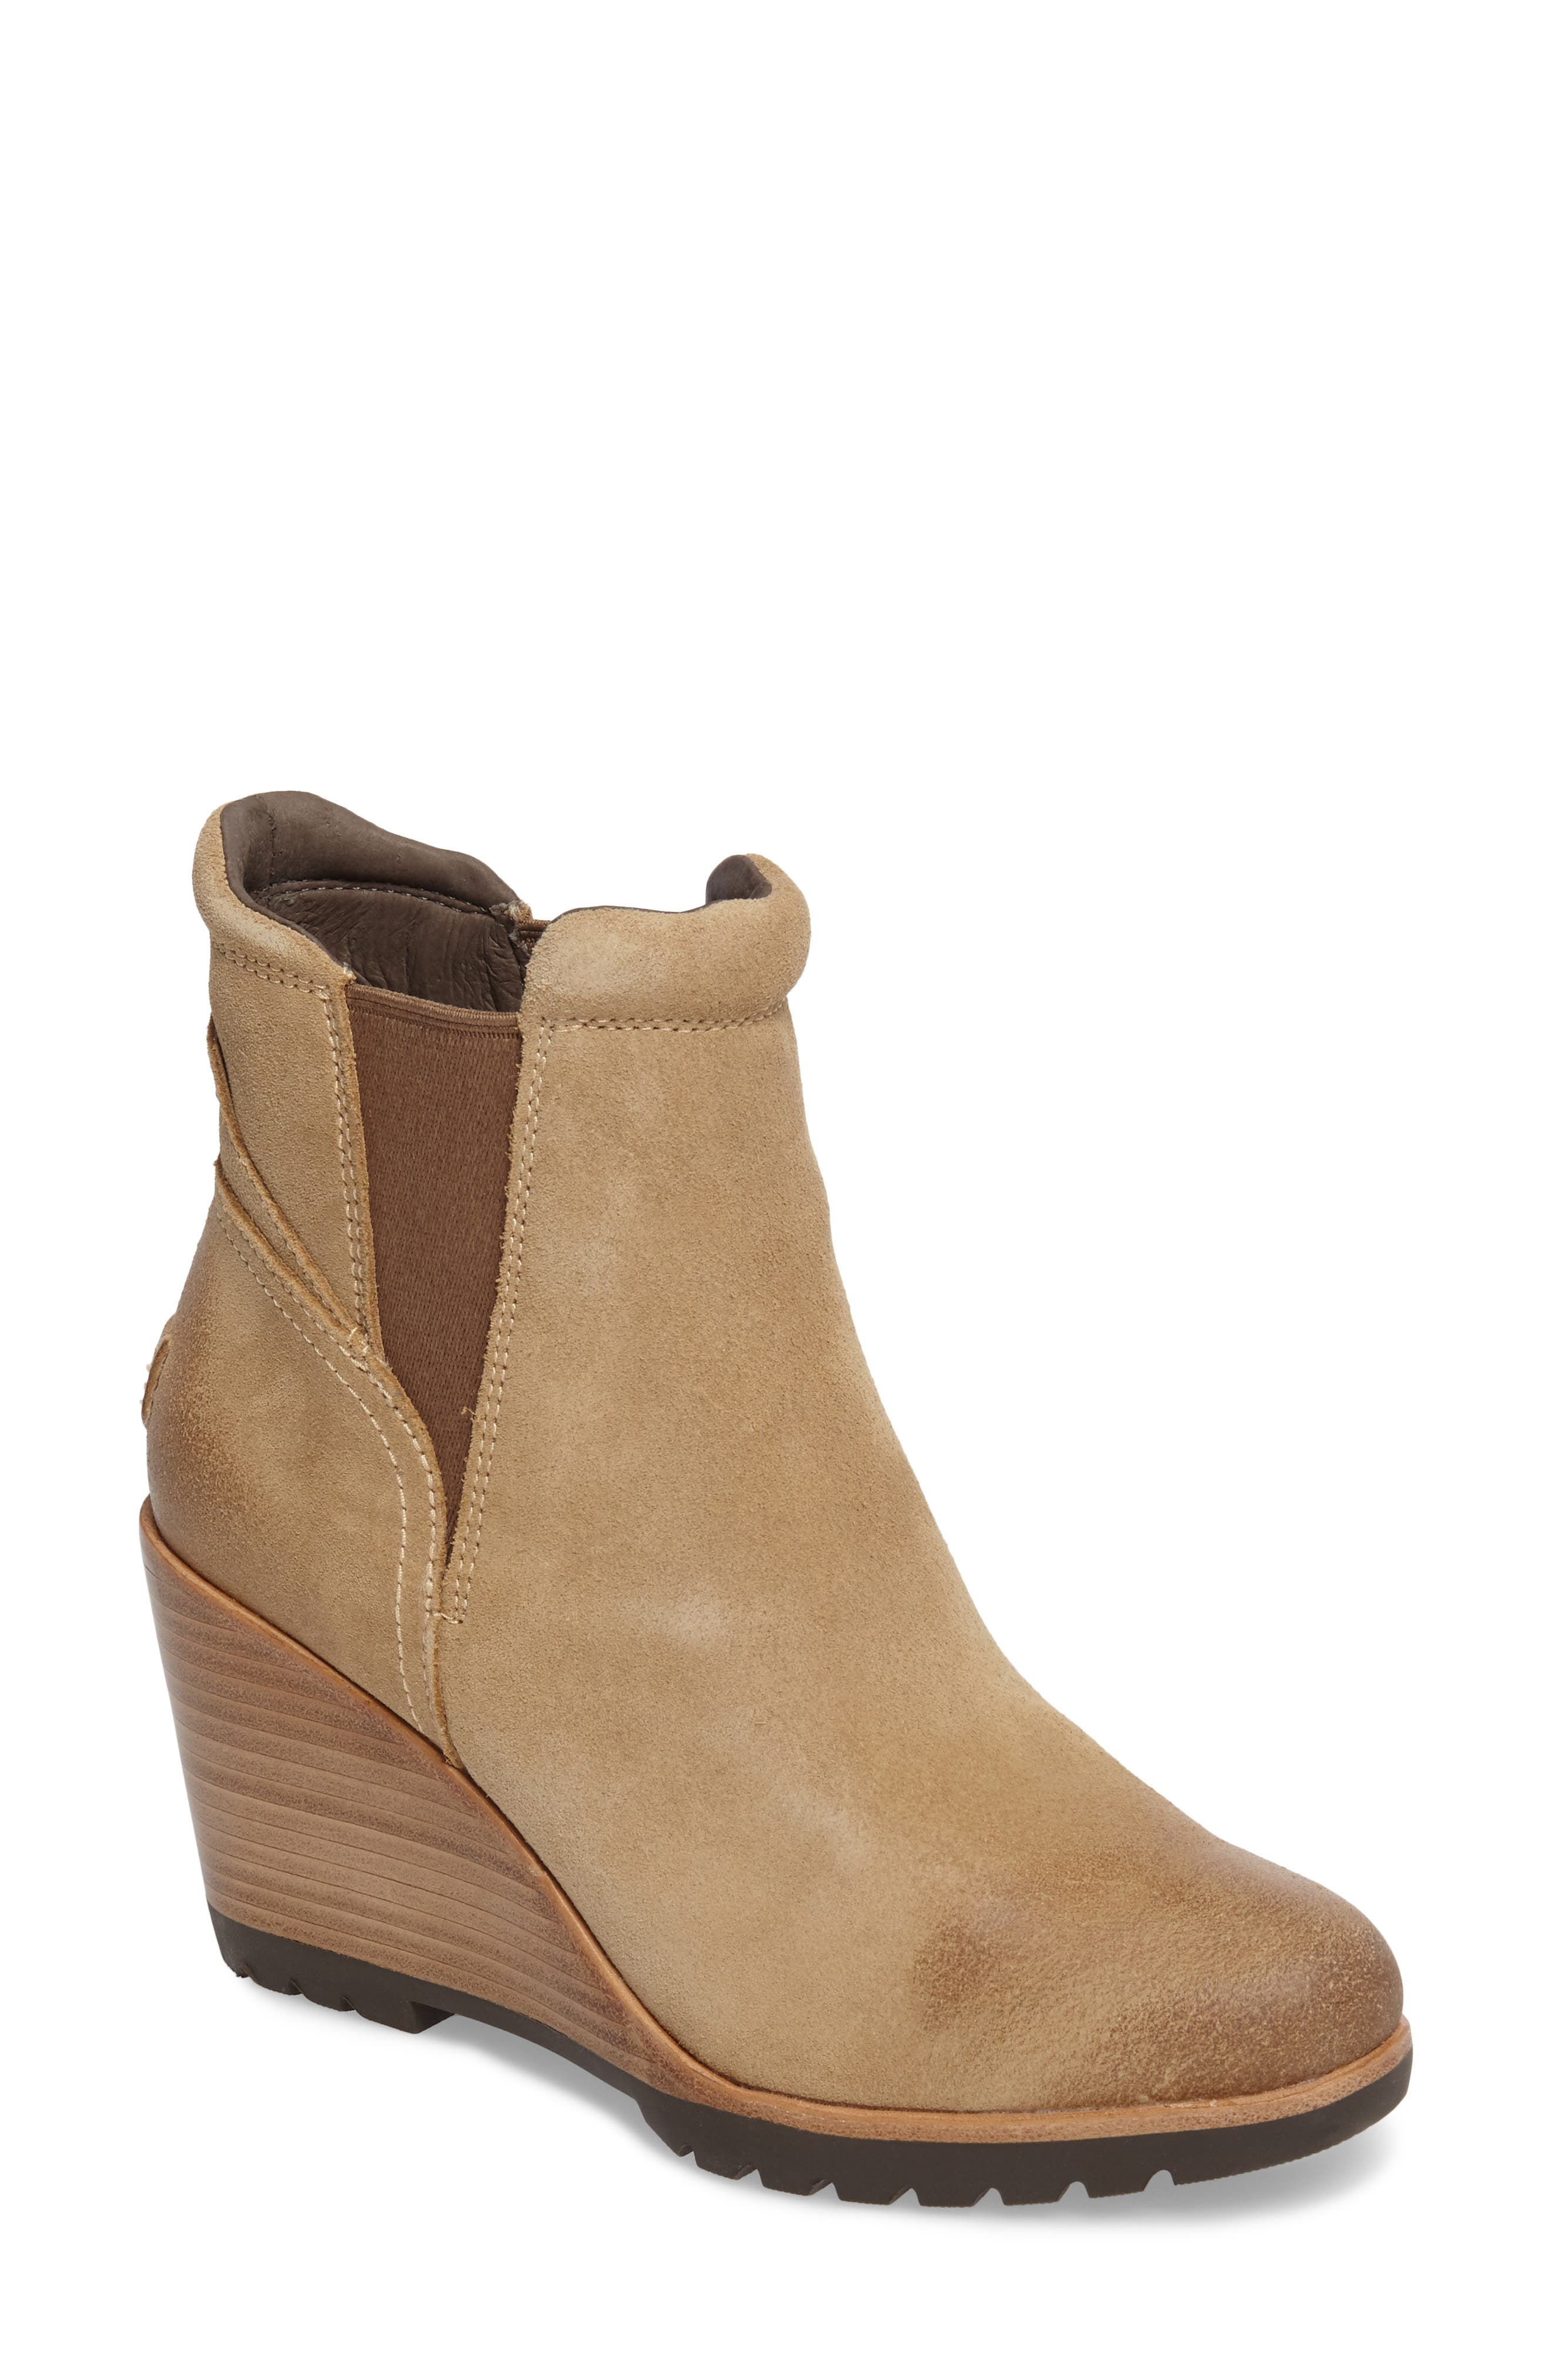 After Hours Chelsea Boot,                             Main thumbnail 4, color,